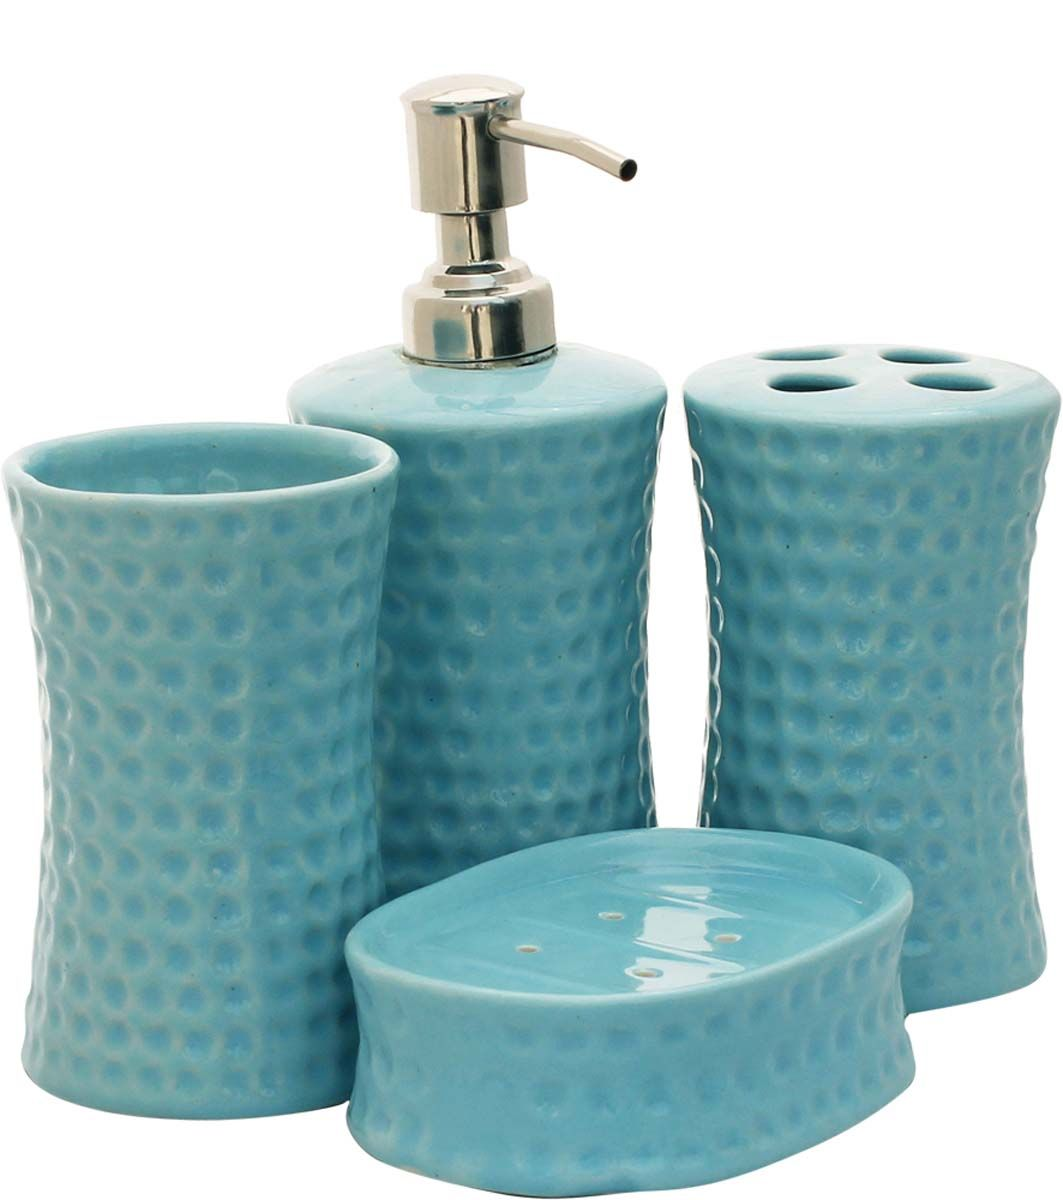 source bulk handmade set of 4 bathroom accessories in hammered textured blue color from wholesale distributors in indiadecorative soap dish tumbler